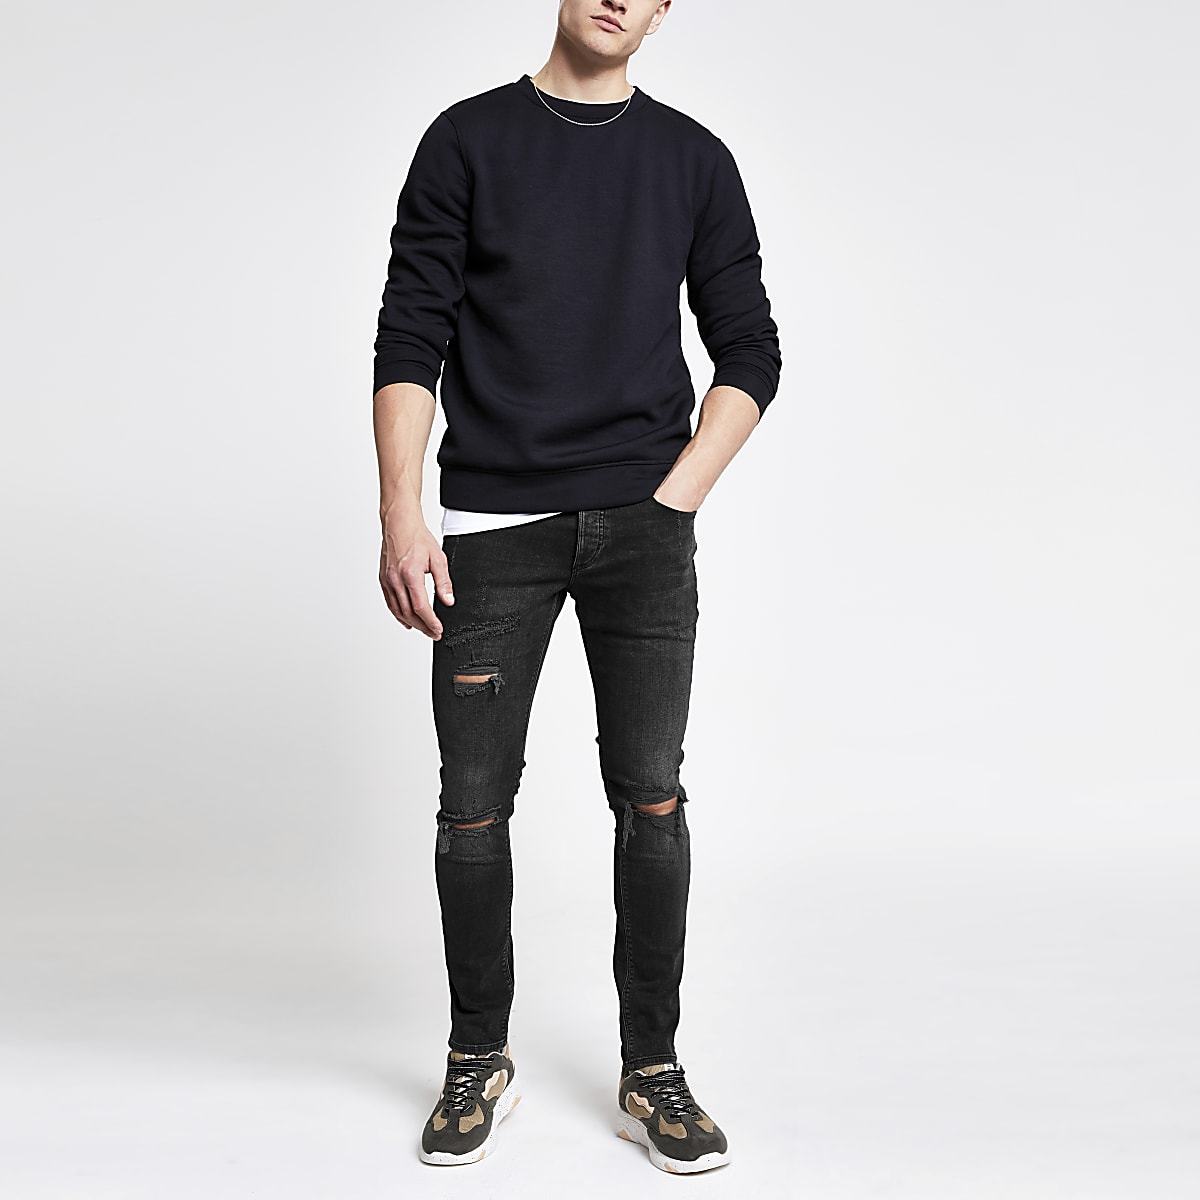 ab28be5ed3 Black wash ripped Sid skinny jeans - Skinny Jeans - Jeans - men